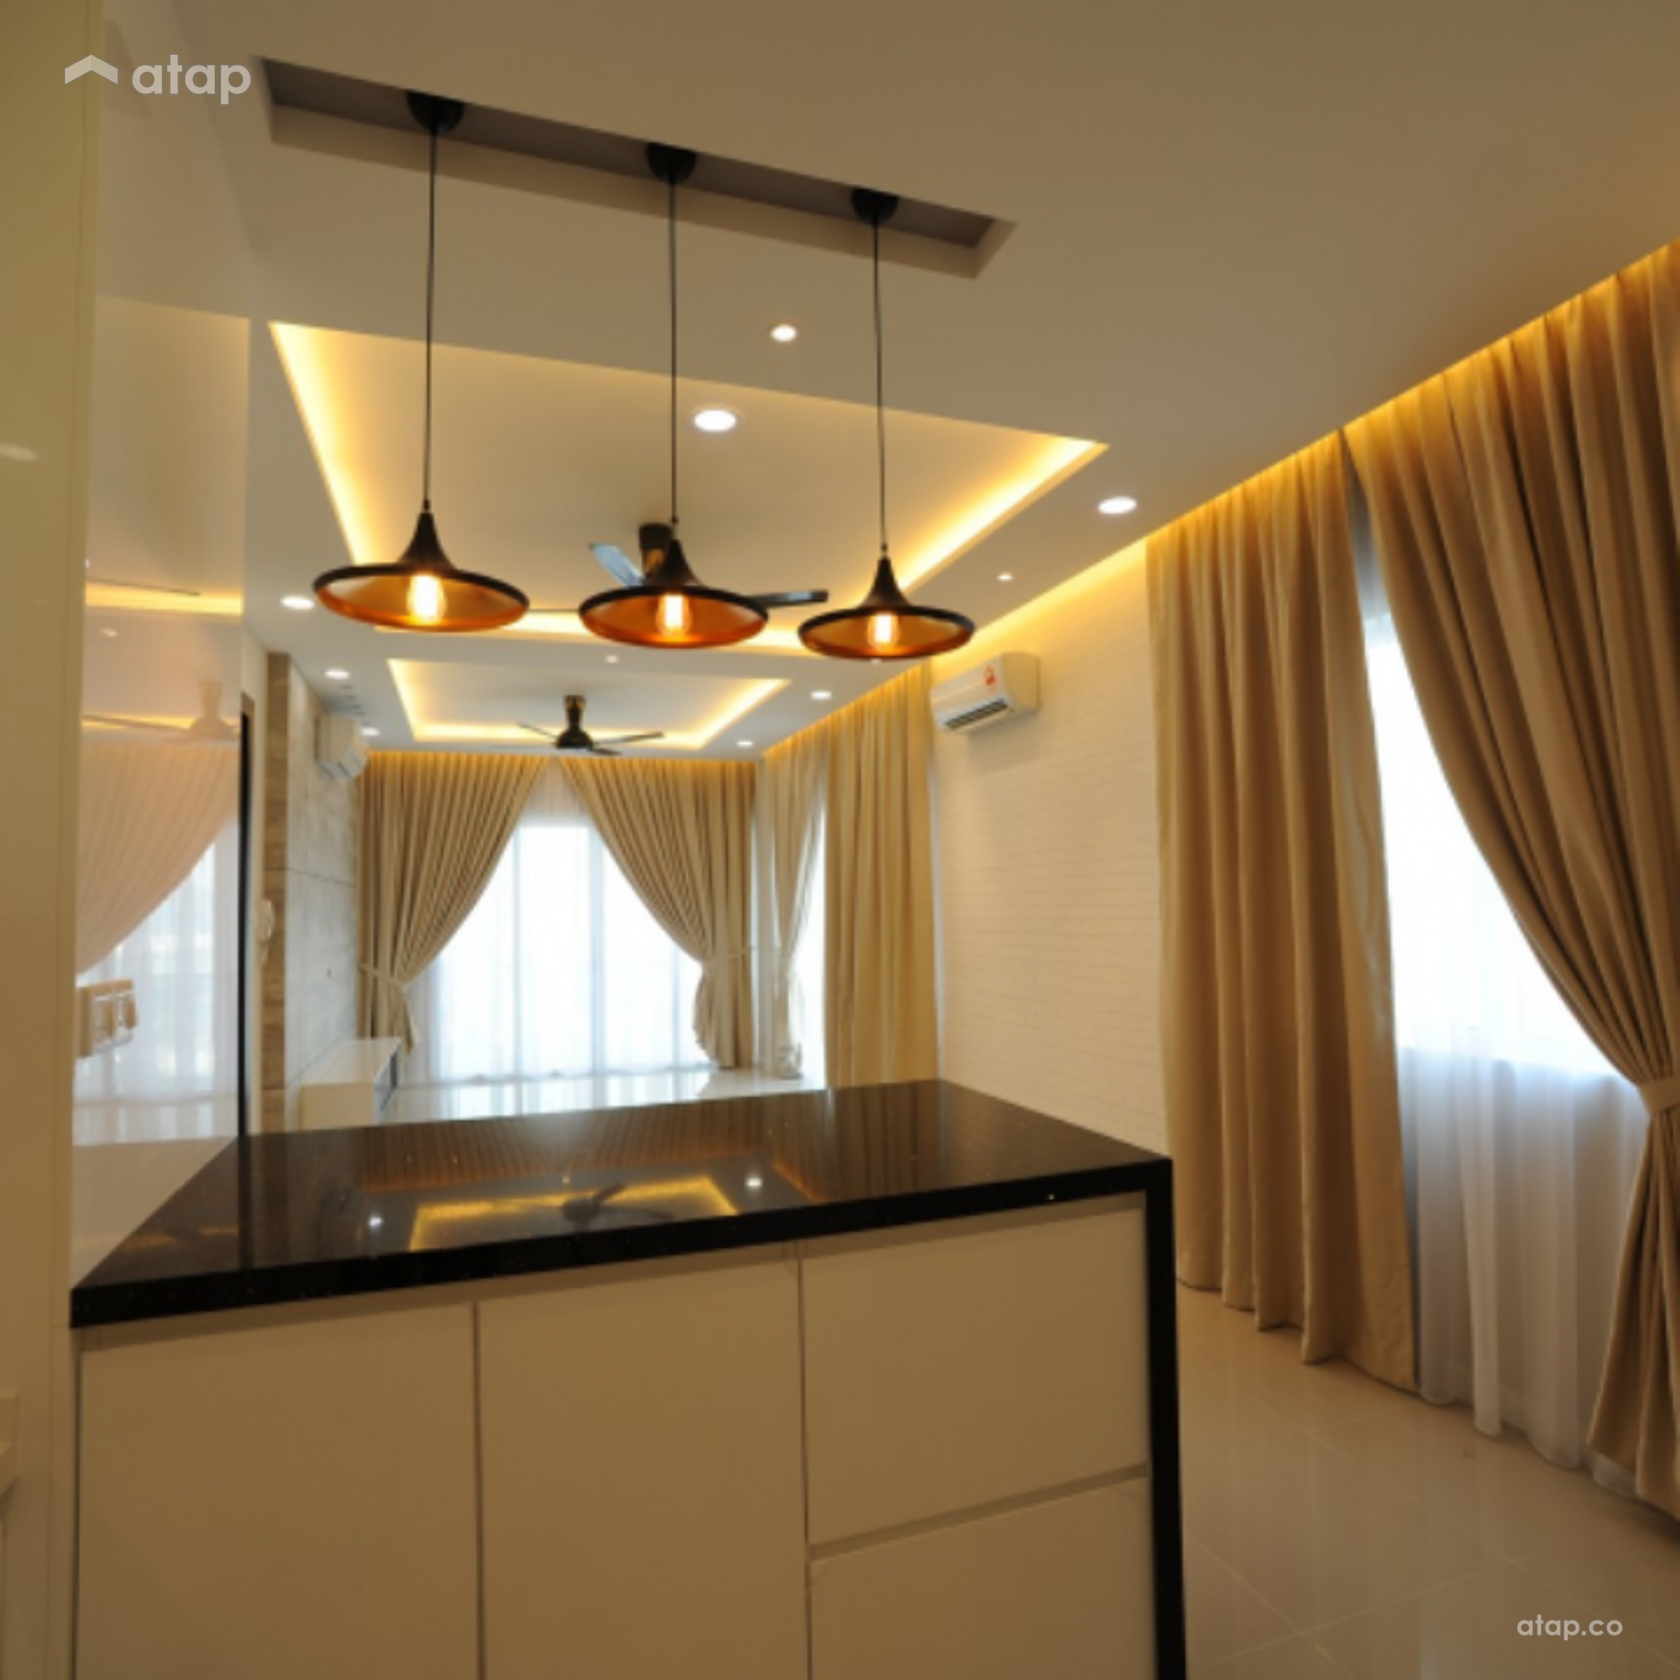 Le Yuan Kuala Lumpur Interior Design Renovation Ideas Photos And